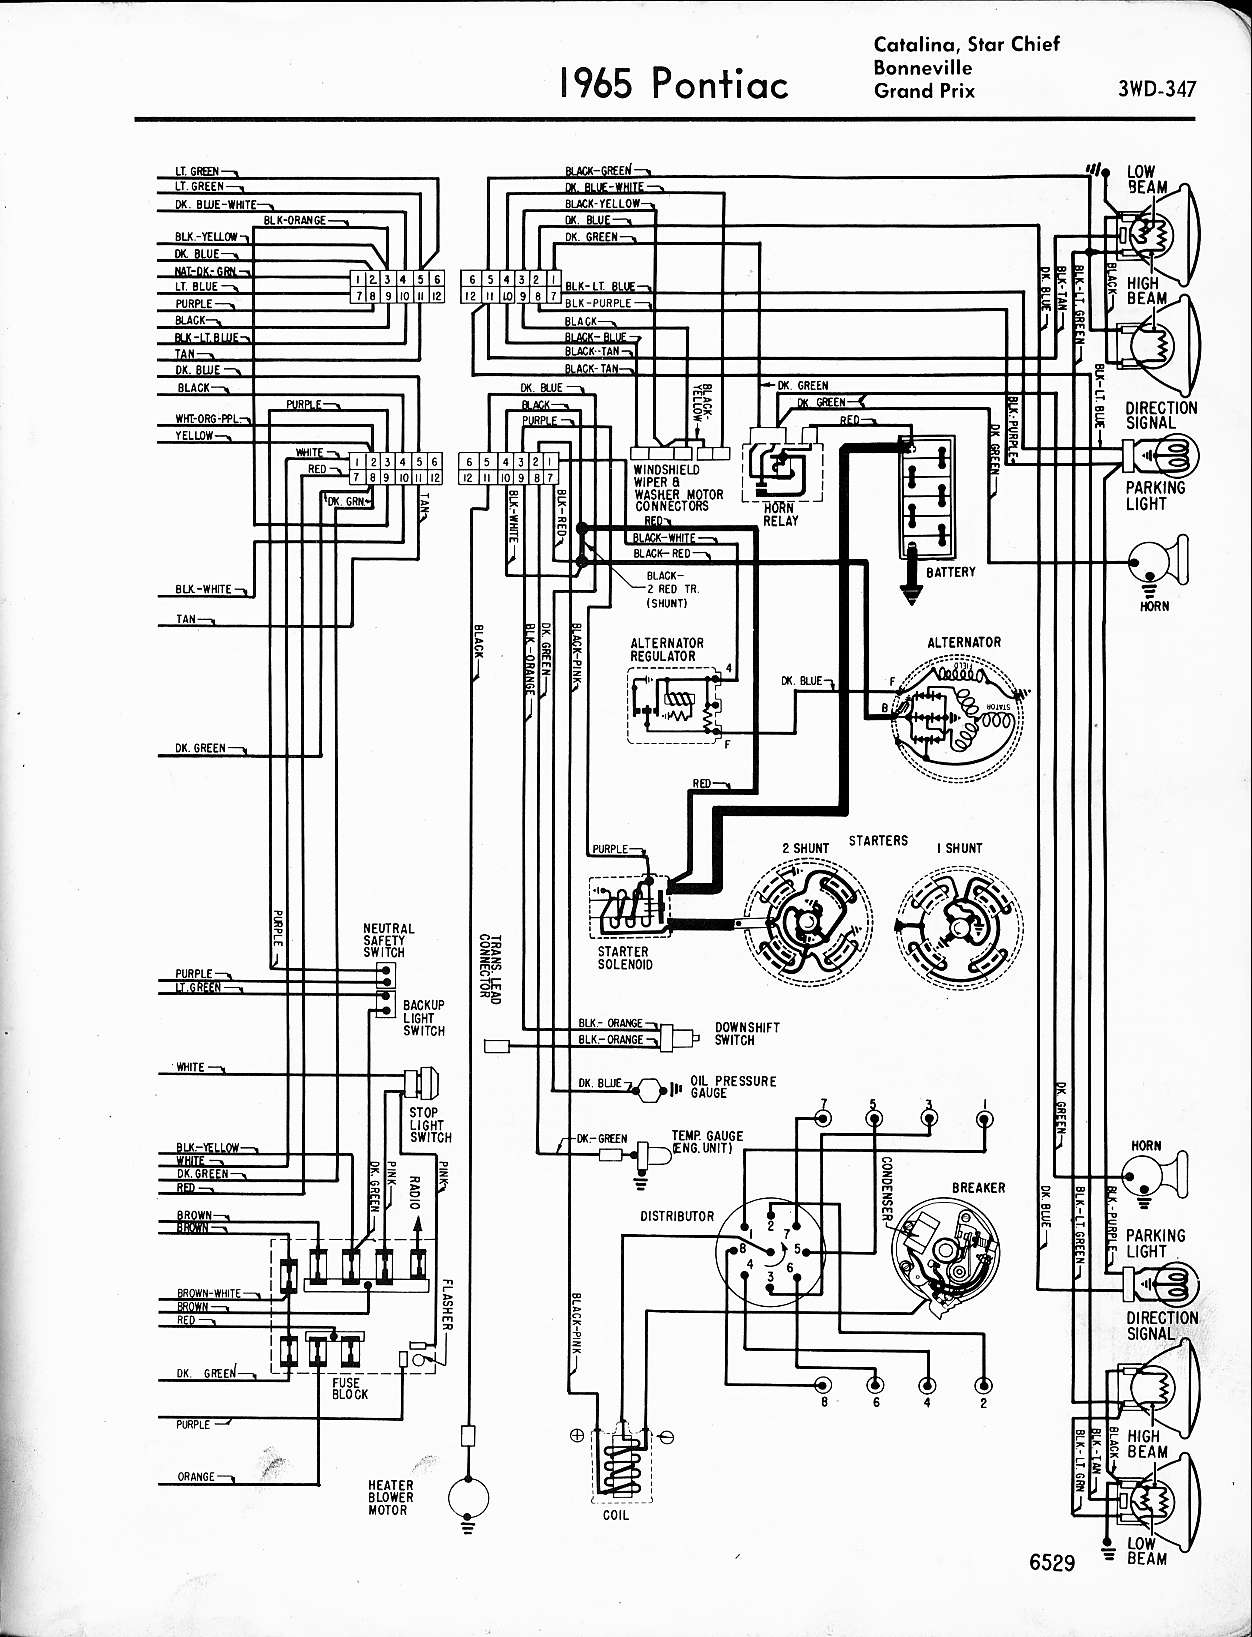 1965 Pontiac Gto Wiring Diagram on 1965 chevy truck wiring harness